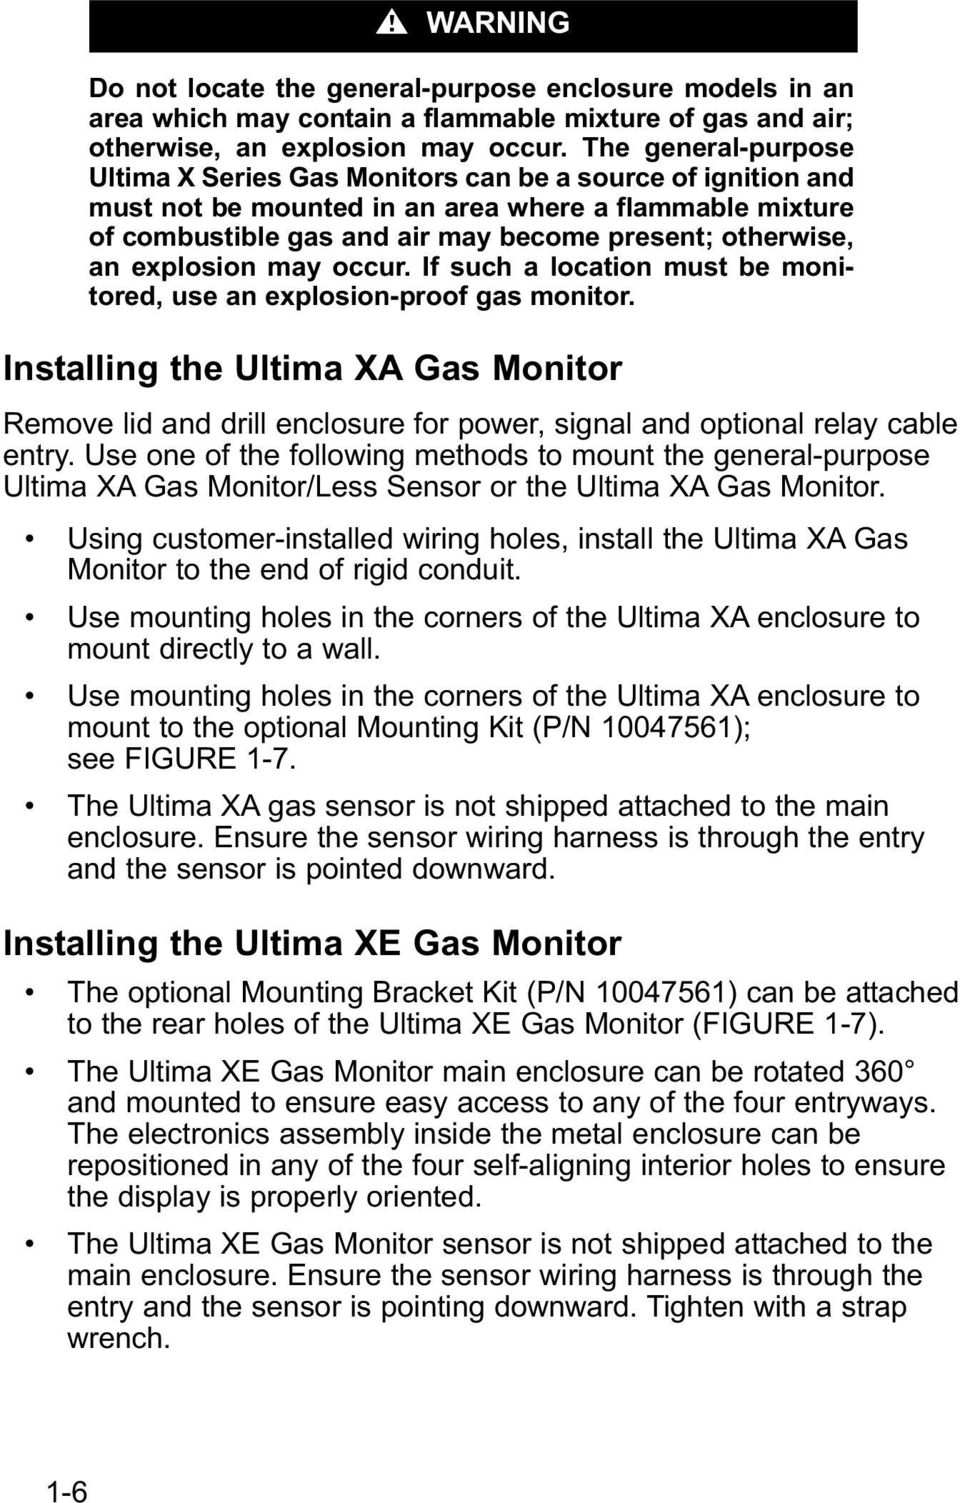 Ultima X Series Gas Monitors Instruction Manual Pdf Wiring Harness Explosion May Occur If Such A Location Must Be Monitored Use An